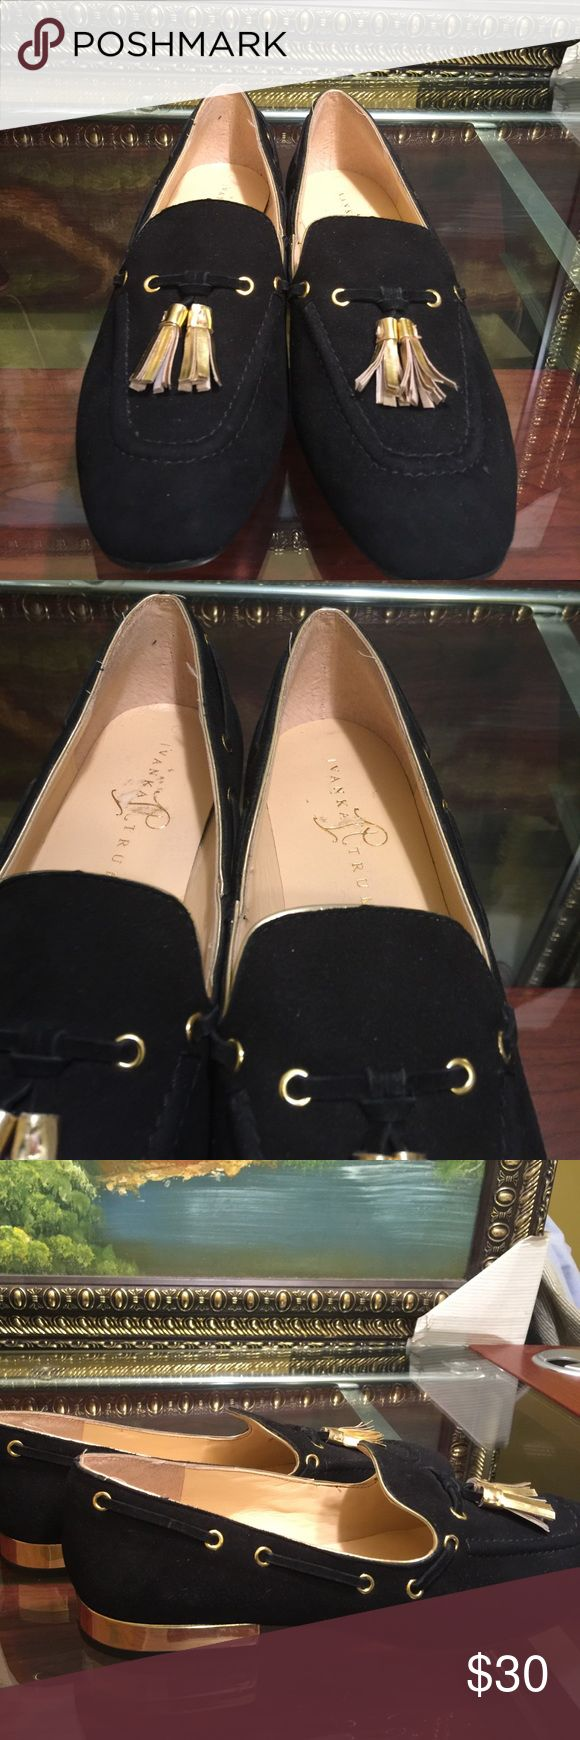 Brand new Beautiful IVANKA TRUMP shoe This is one of the beautiful IVANKA TRUMP mocassin Ivanka Trump Shoes Moccasins